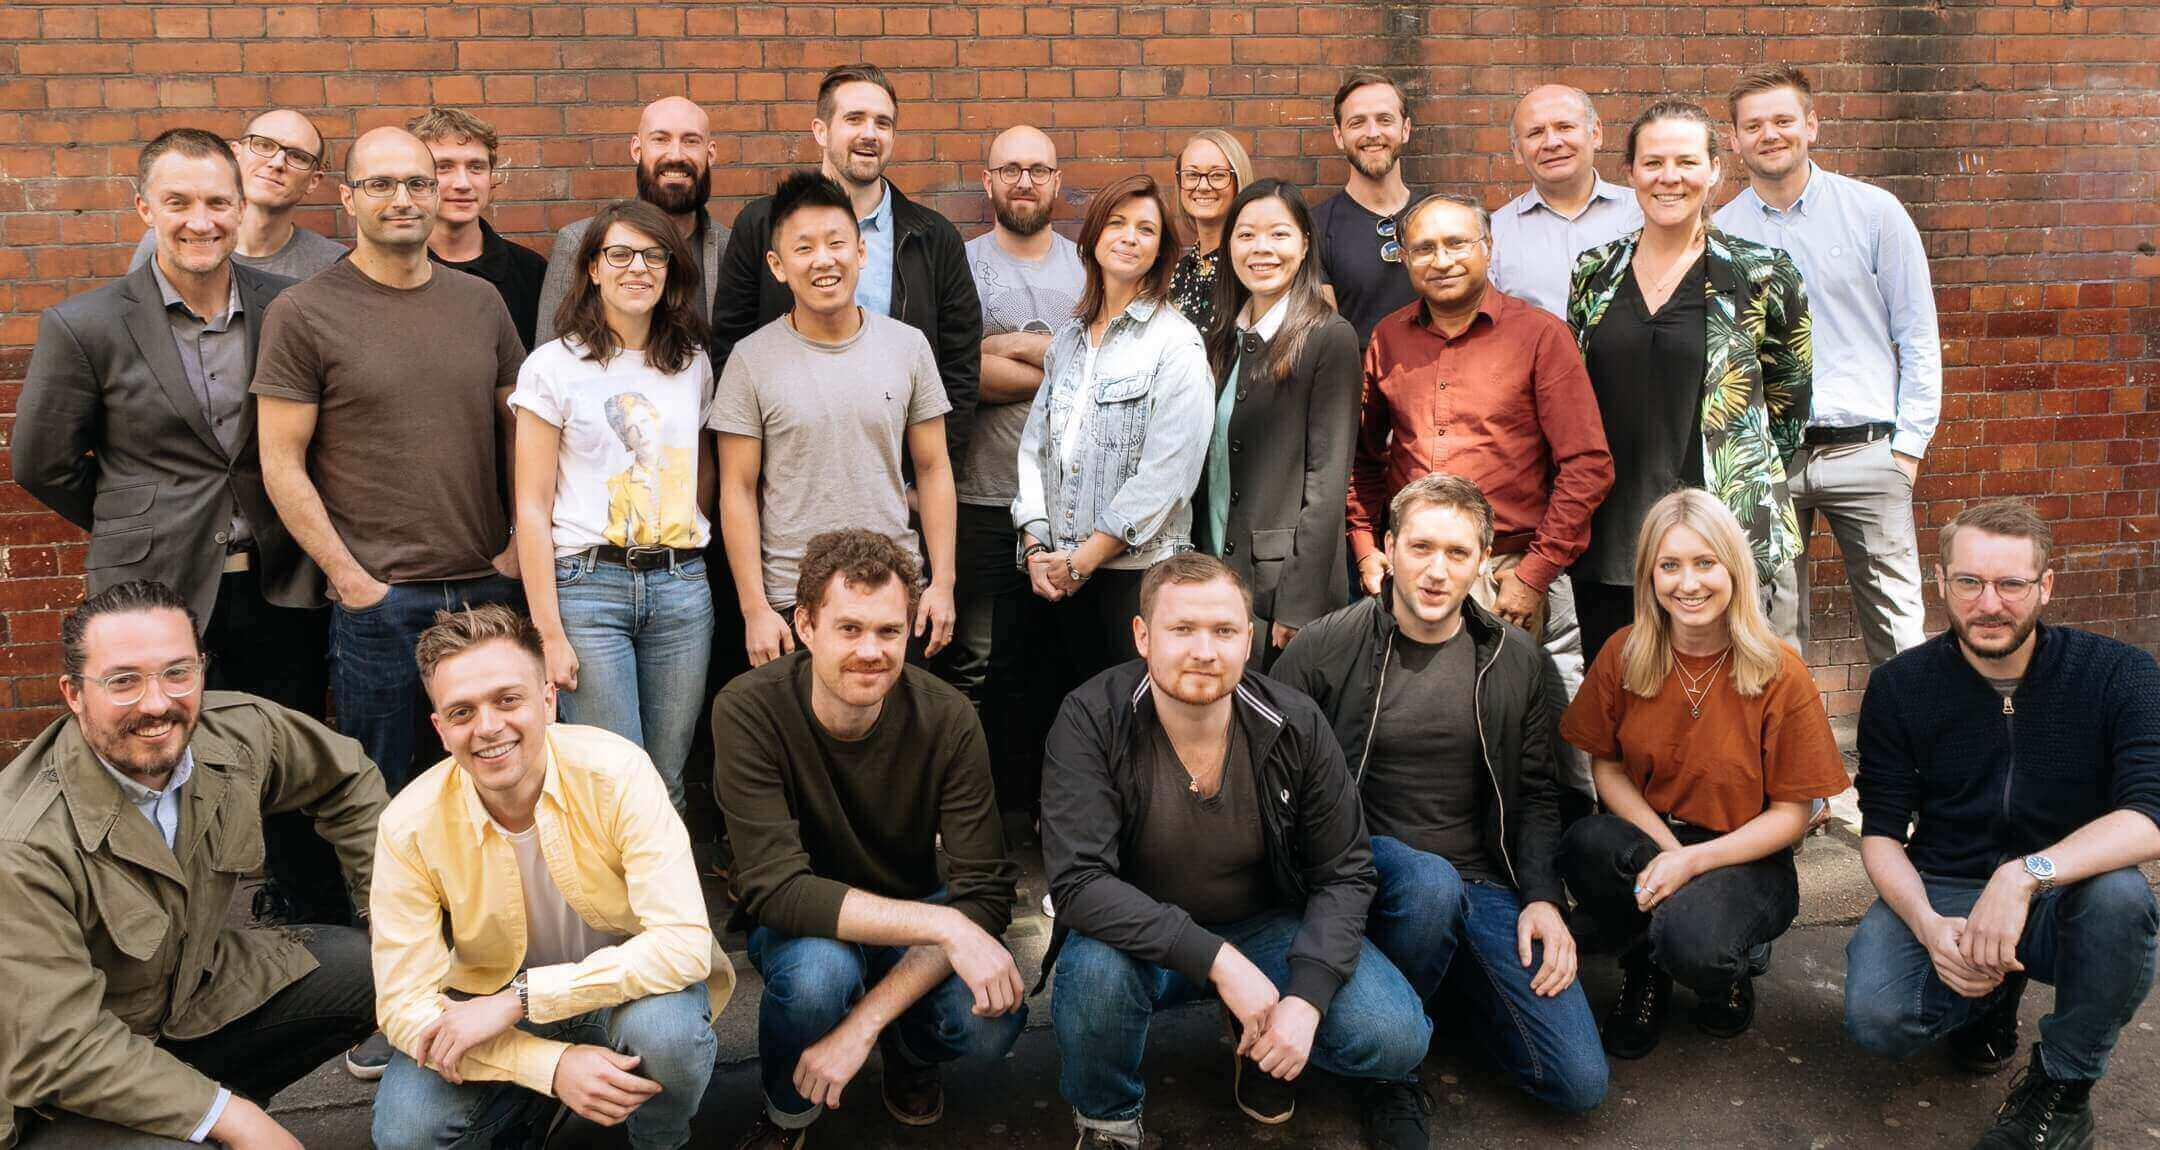 Group photo of the buzzvault team showing 24 people in front of an orange brick wall